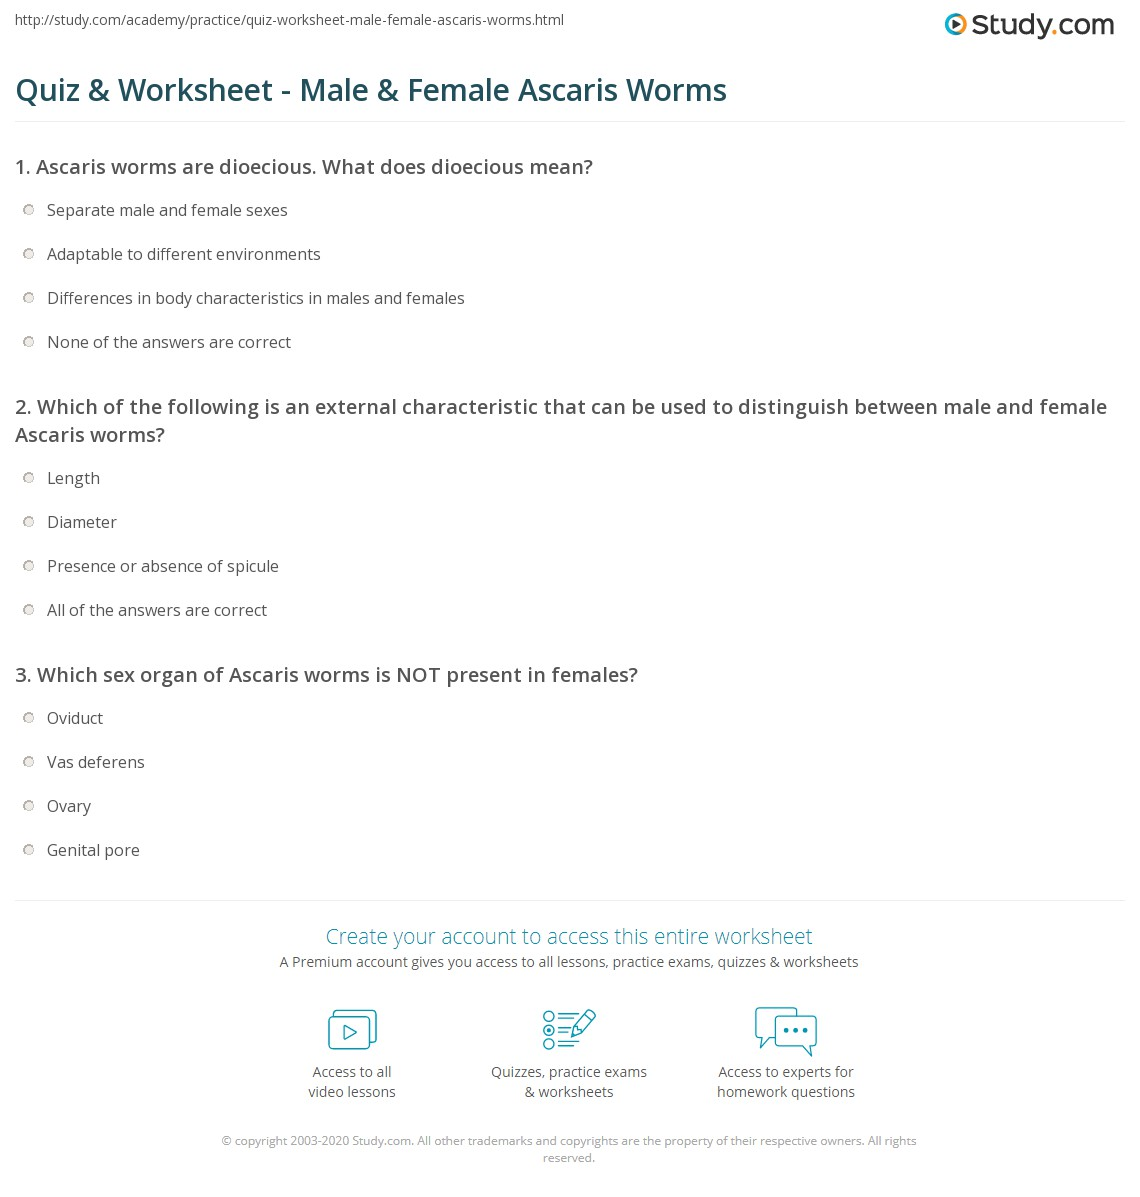 Quiz & Worksheet - Male & Female Ascaris Worms